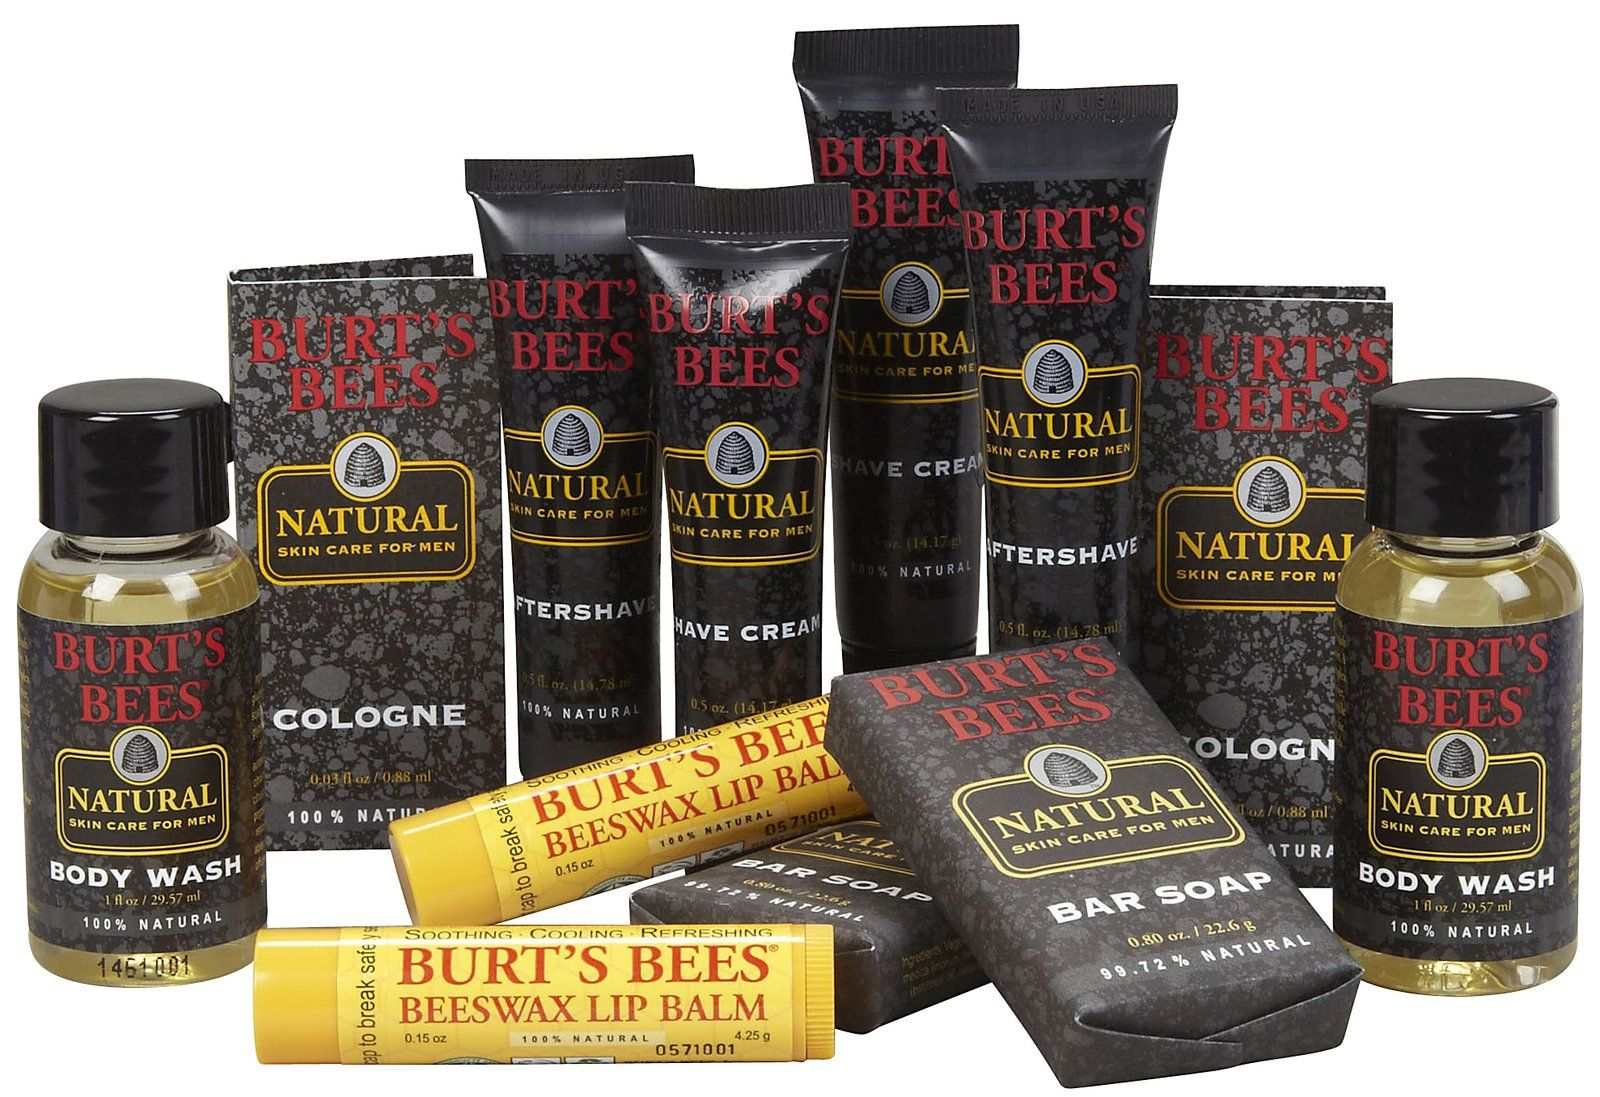 Burt S Bees Sub Brand Suited For Men Burts Bees Mens Burts Bees Body Wash